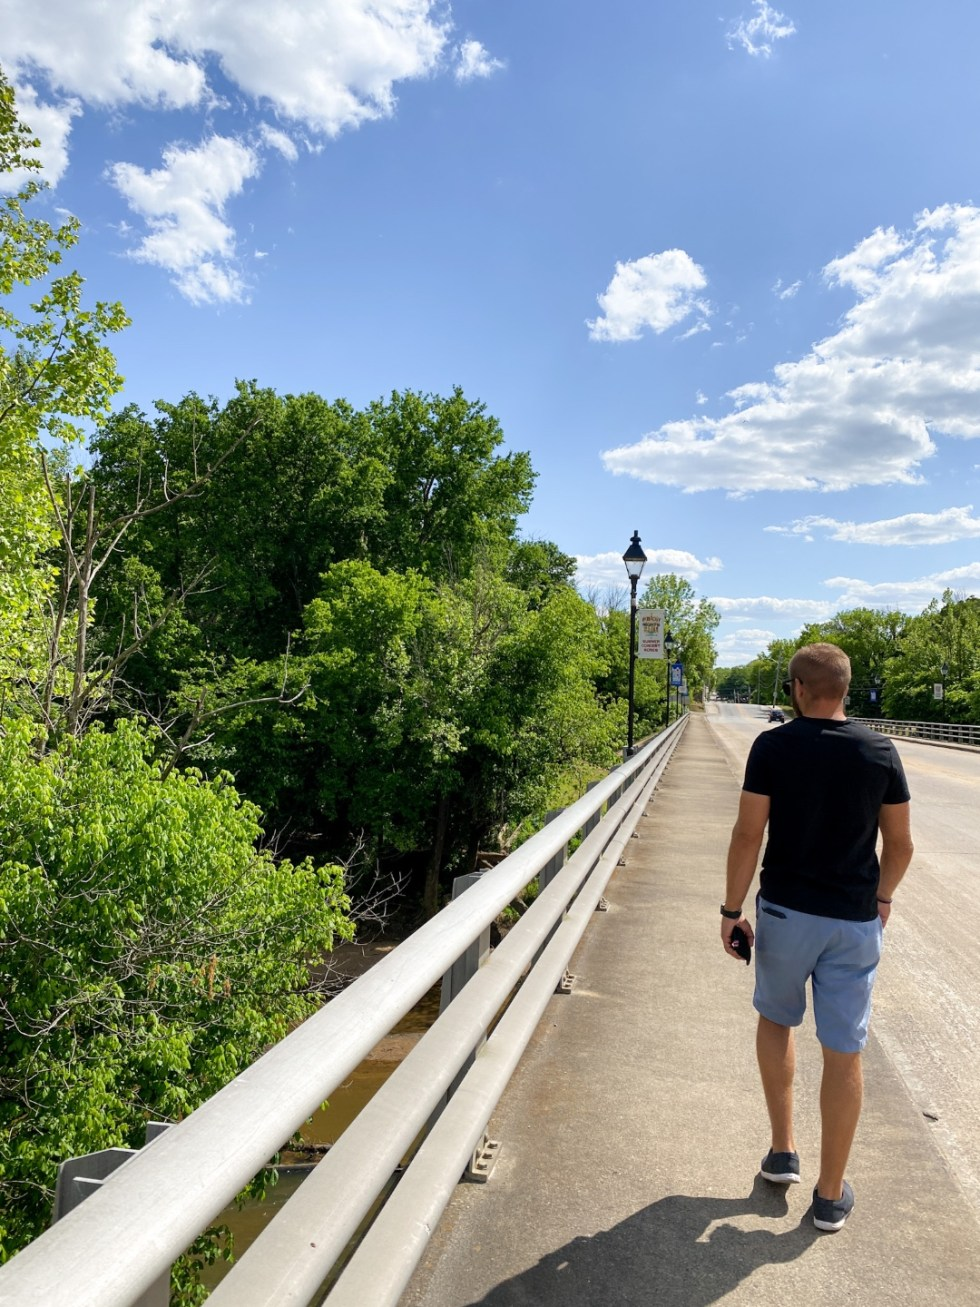 An Afternoon Trip to Franklin County, NC - I'm Fixin' To - @imfixintoblog | Franklin County NC by popular North Carolina travel blog, I'm Fixin' To: image of a man walking on a bridge over a river.